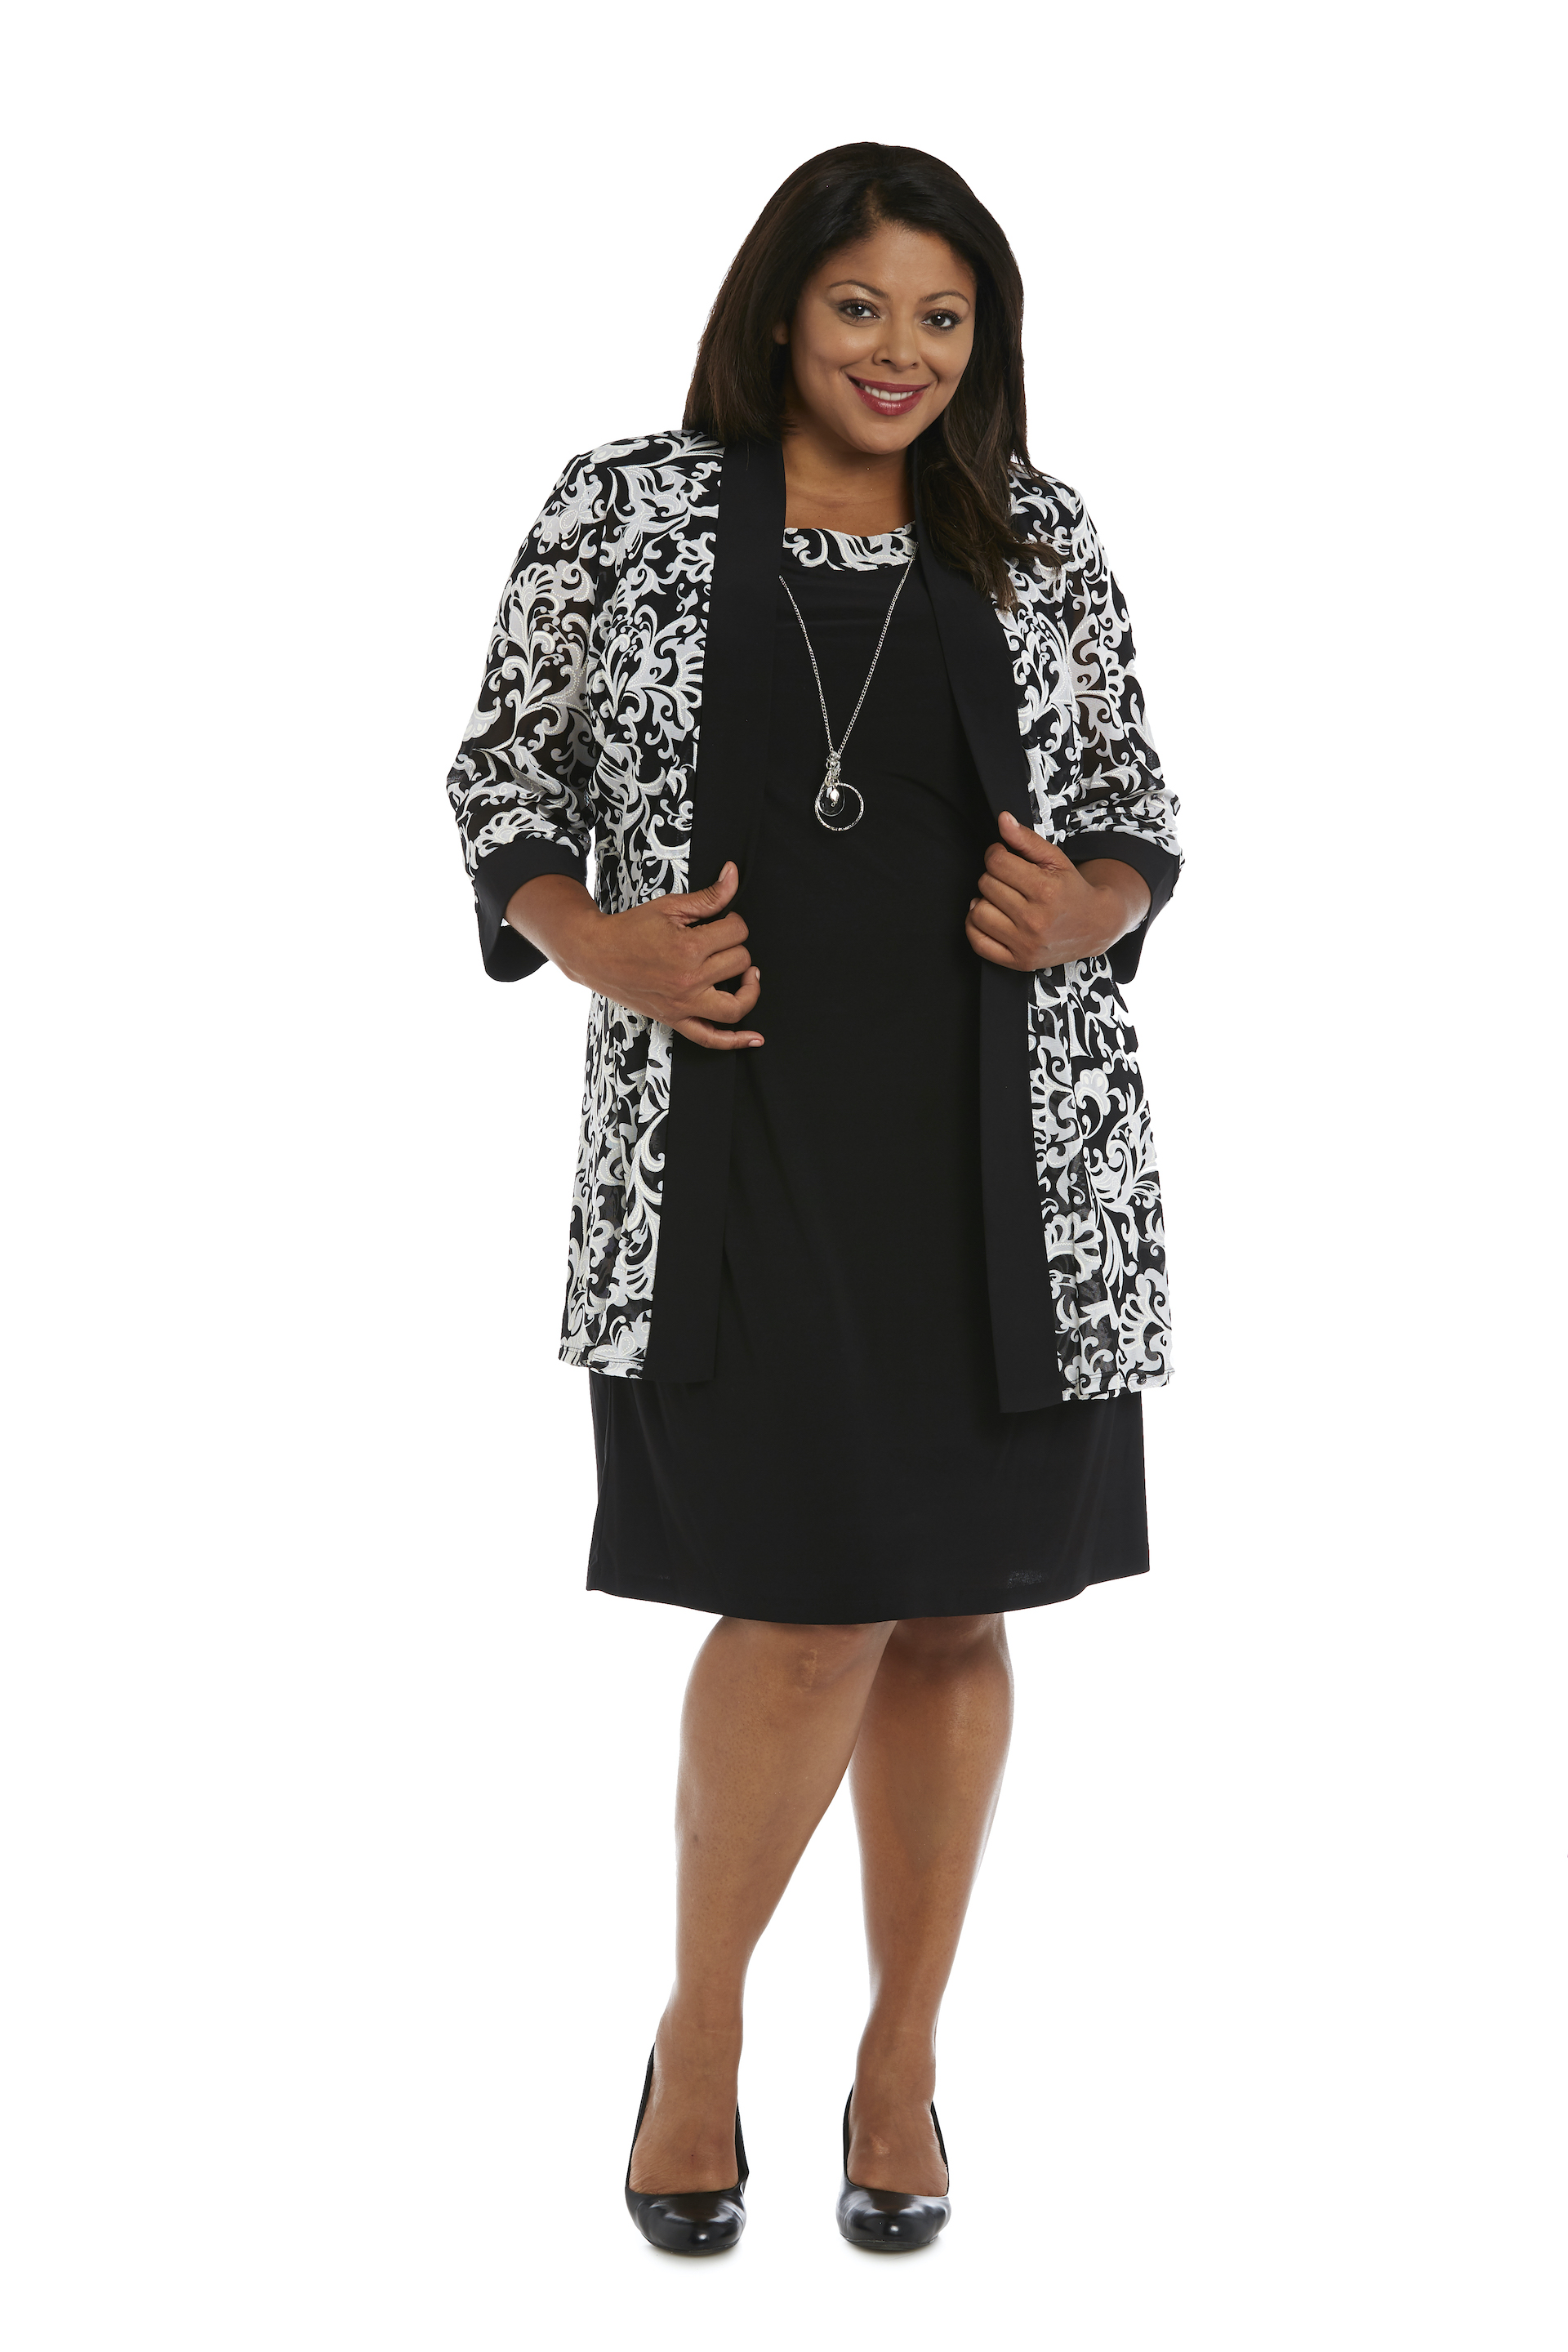 Scroll Mesh  Jacket with Sheath Dress -Black/White - Front